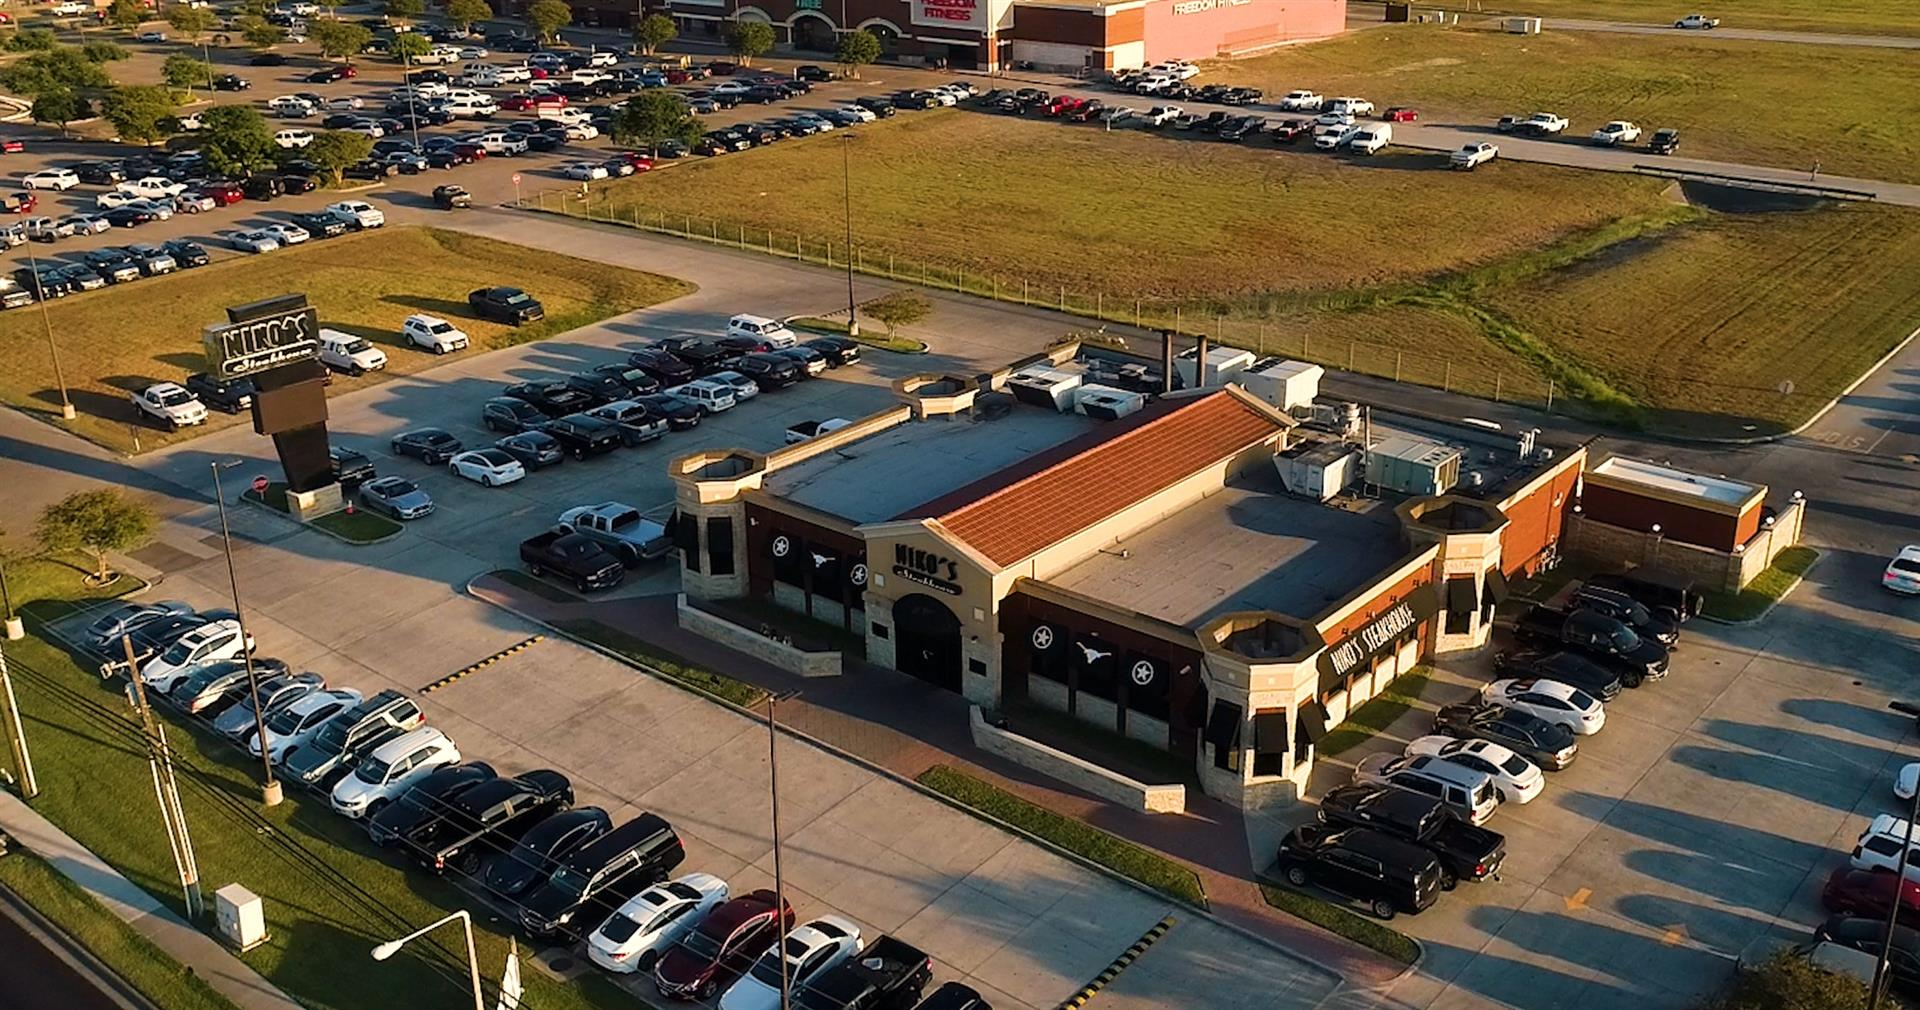 aerial view of the restaurant and parking lots